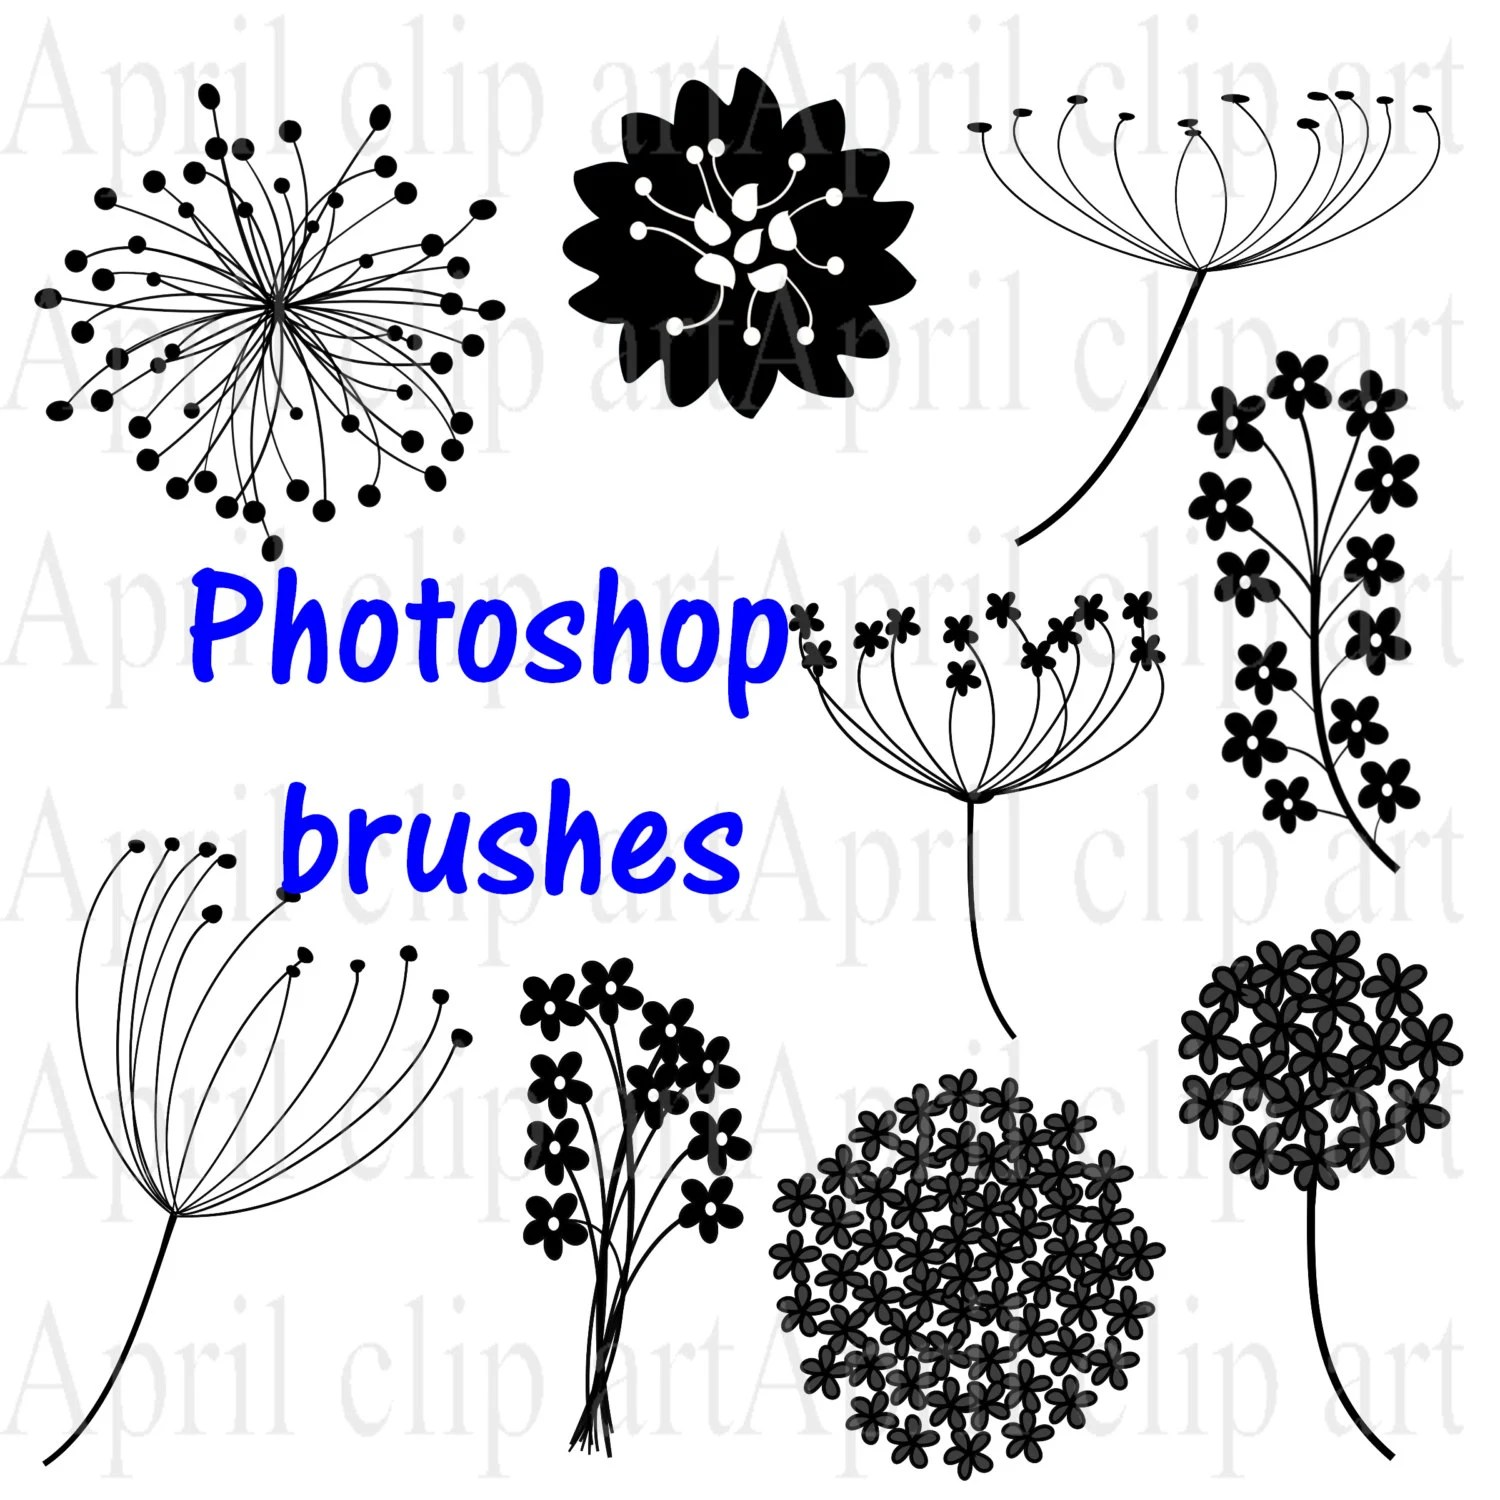 Photoshop Brushes Flowers set 2, Digital Clip Art in PNG